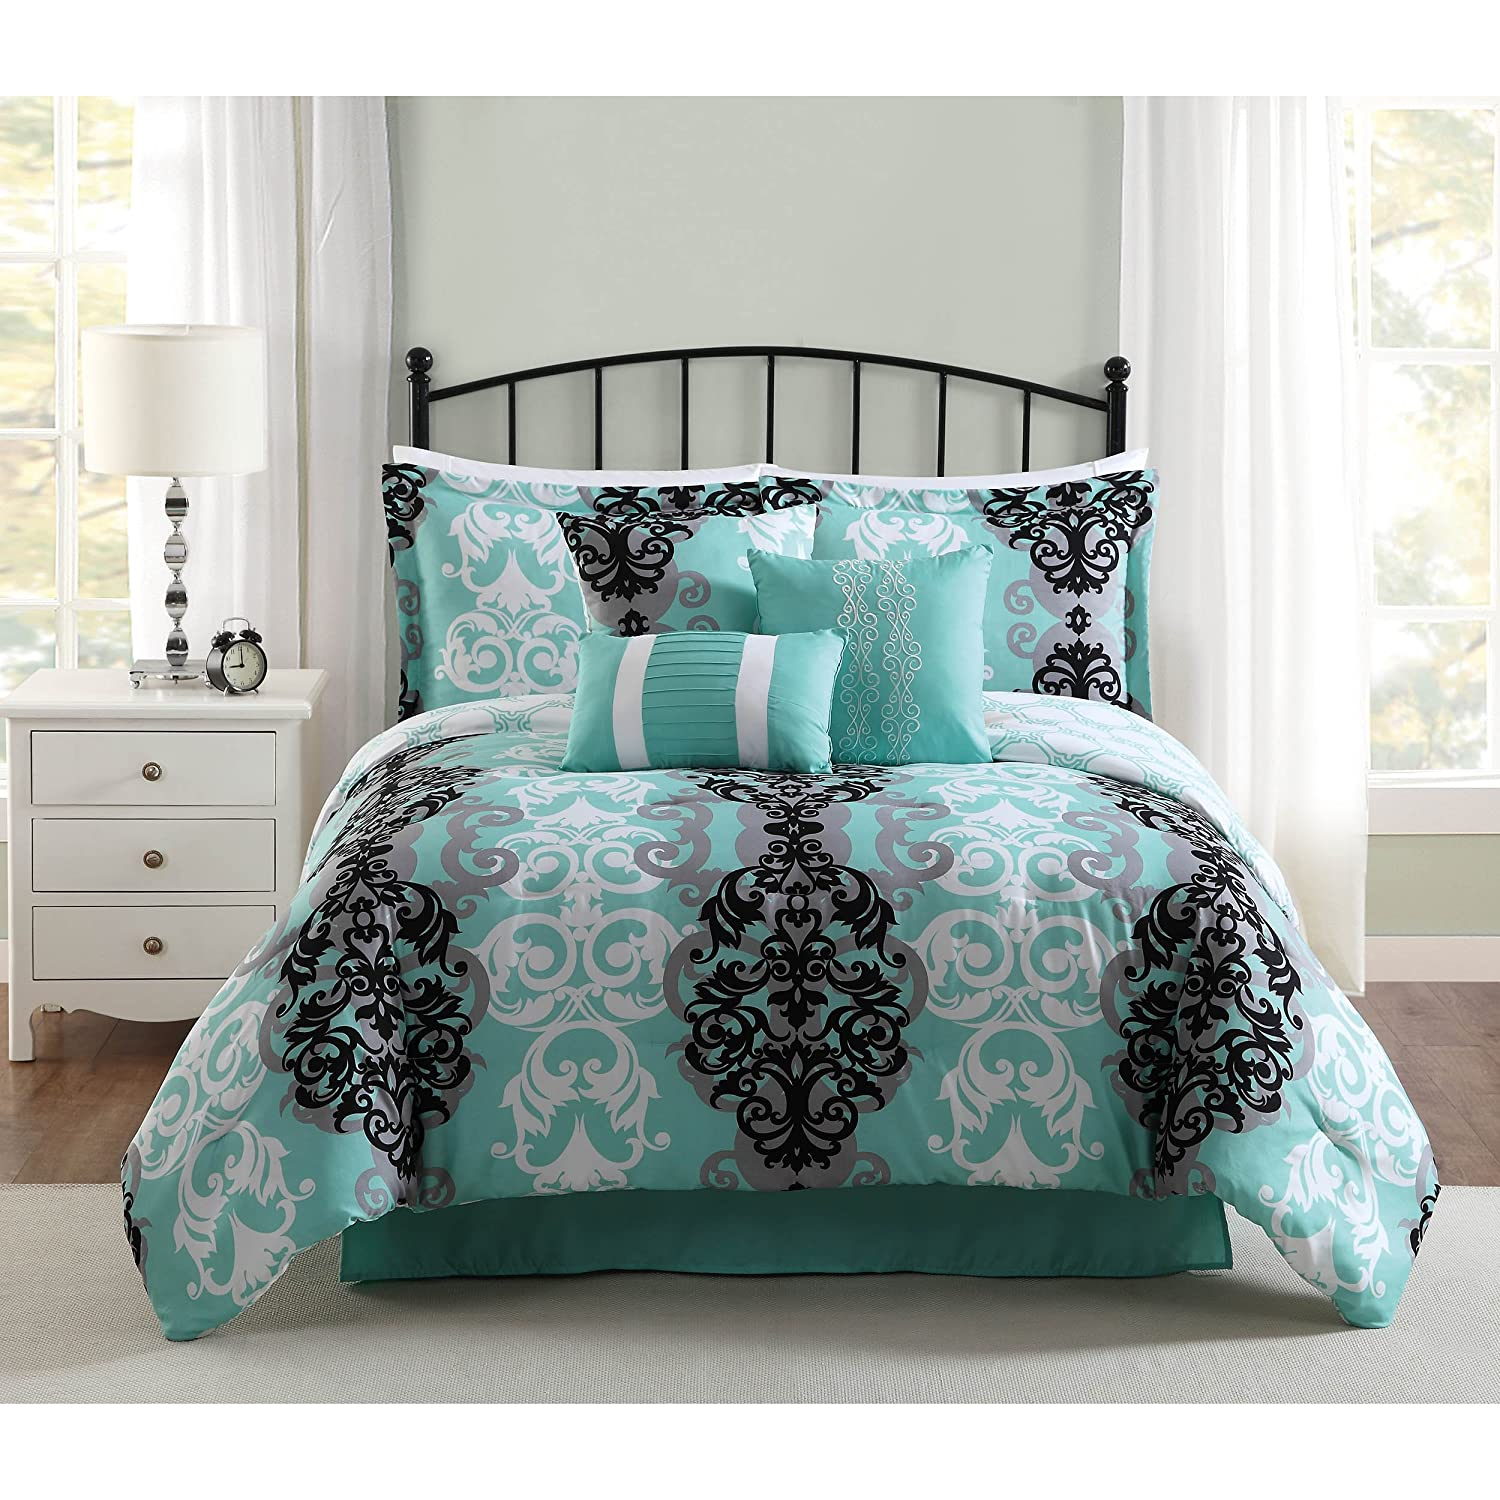 Studio 17 Downton 7-Piece Full/Queen Comforter Set, Black/Gray/Aqua